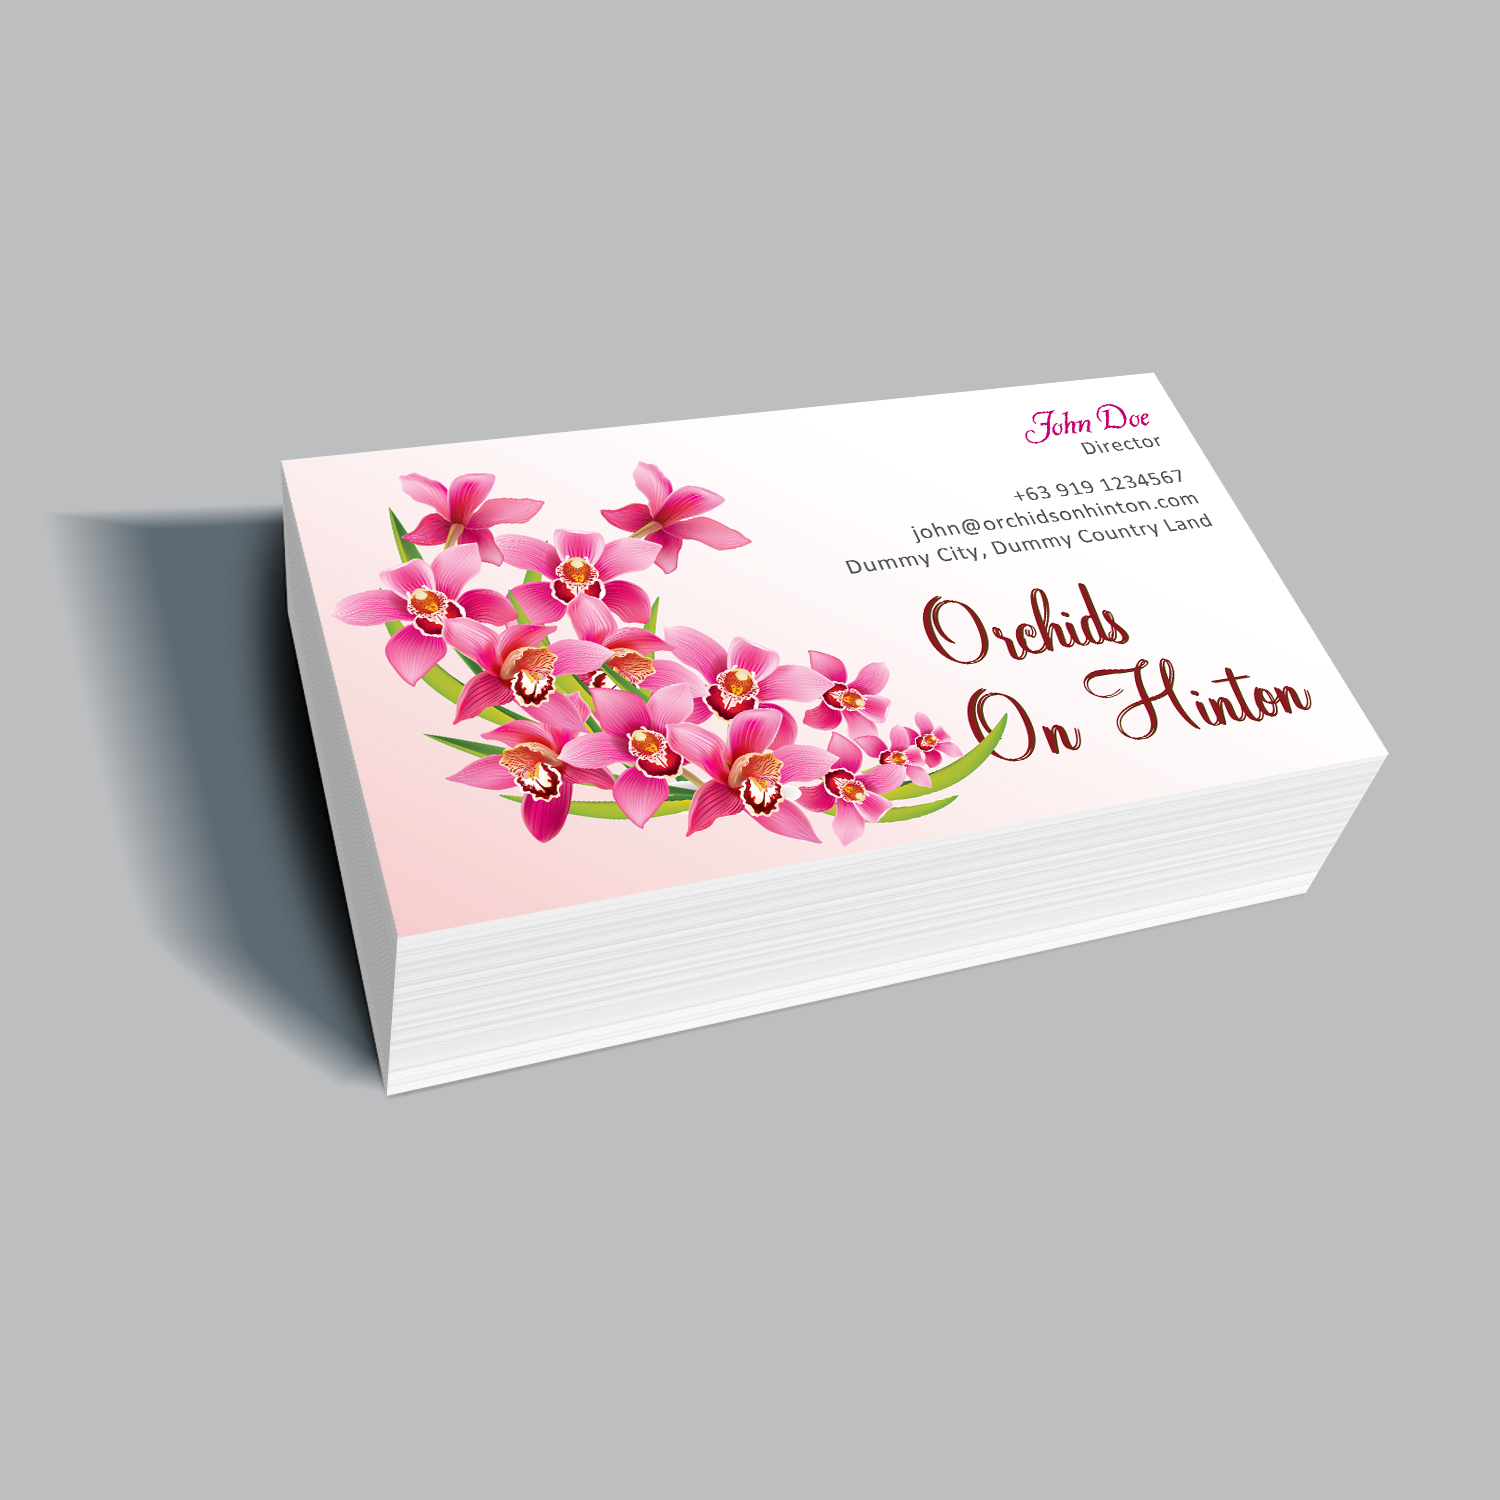 Personable, Elegant, Business Business Card Design for Orchids on ...